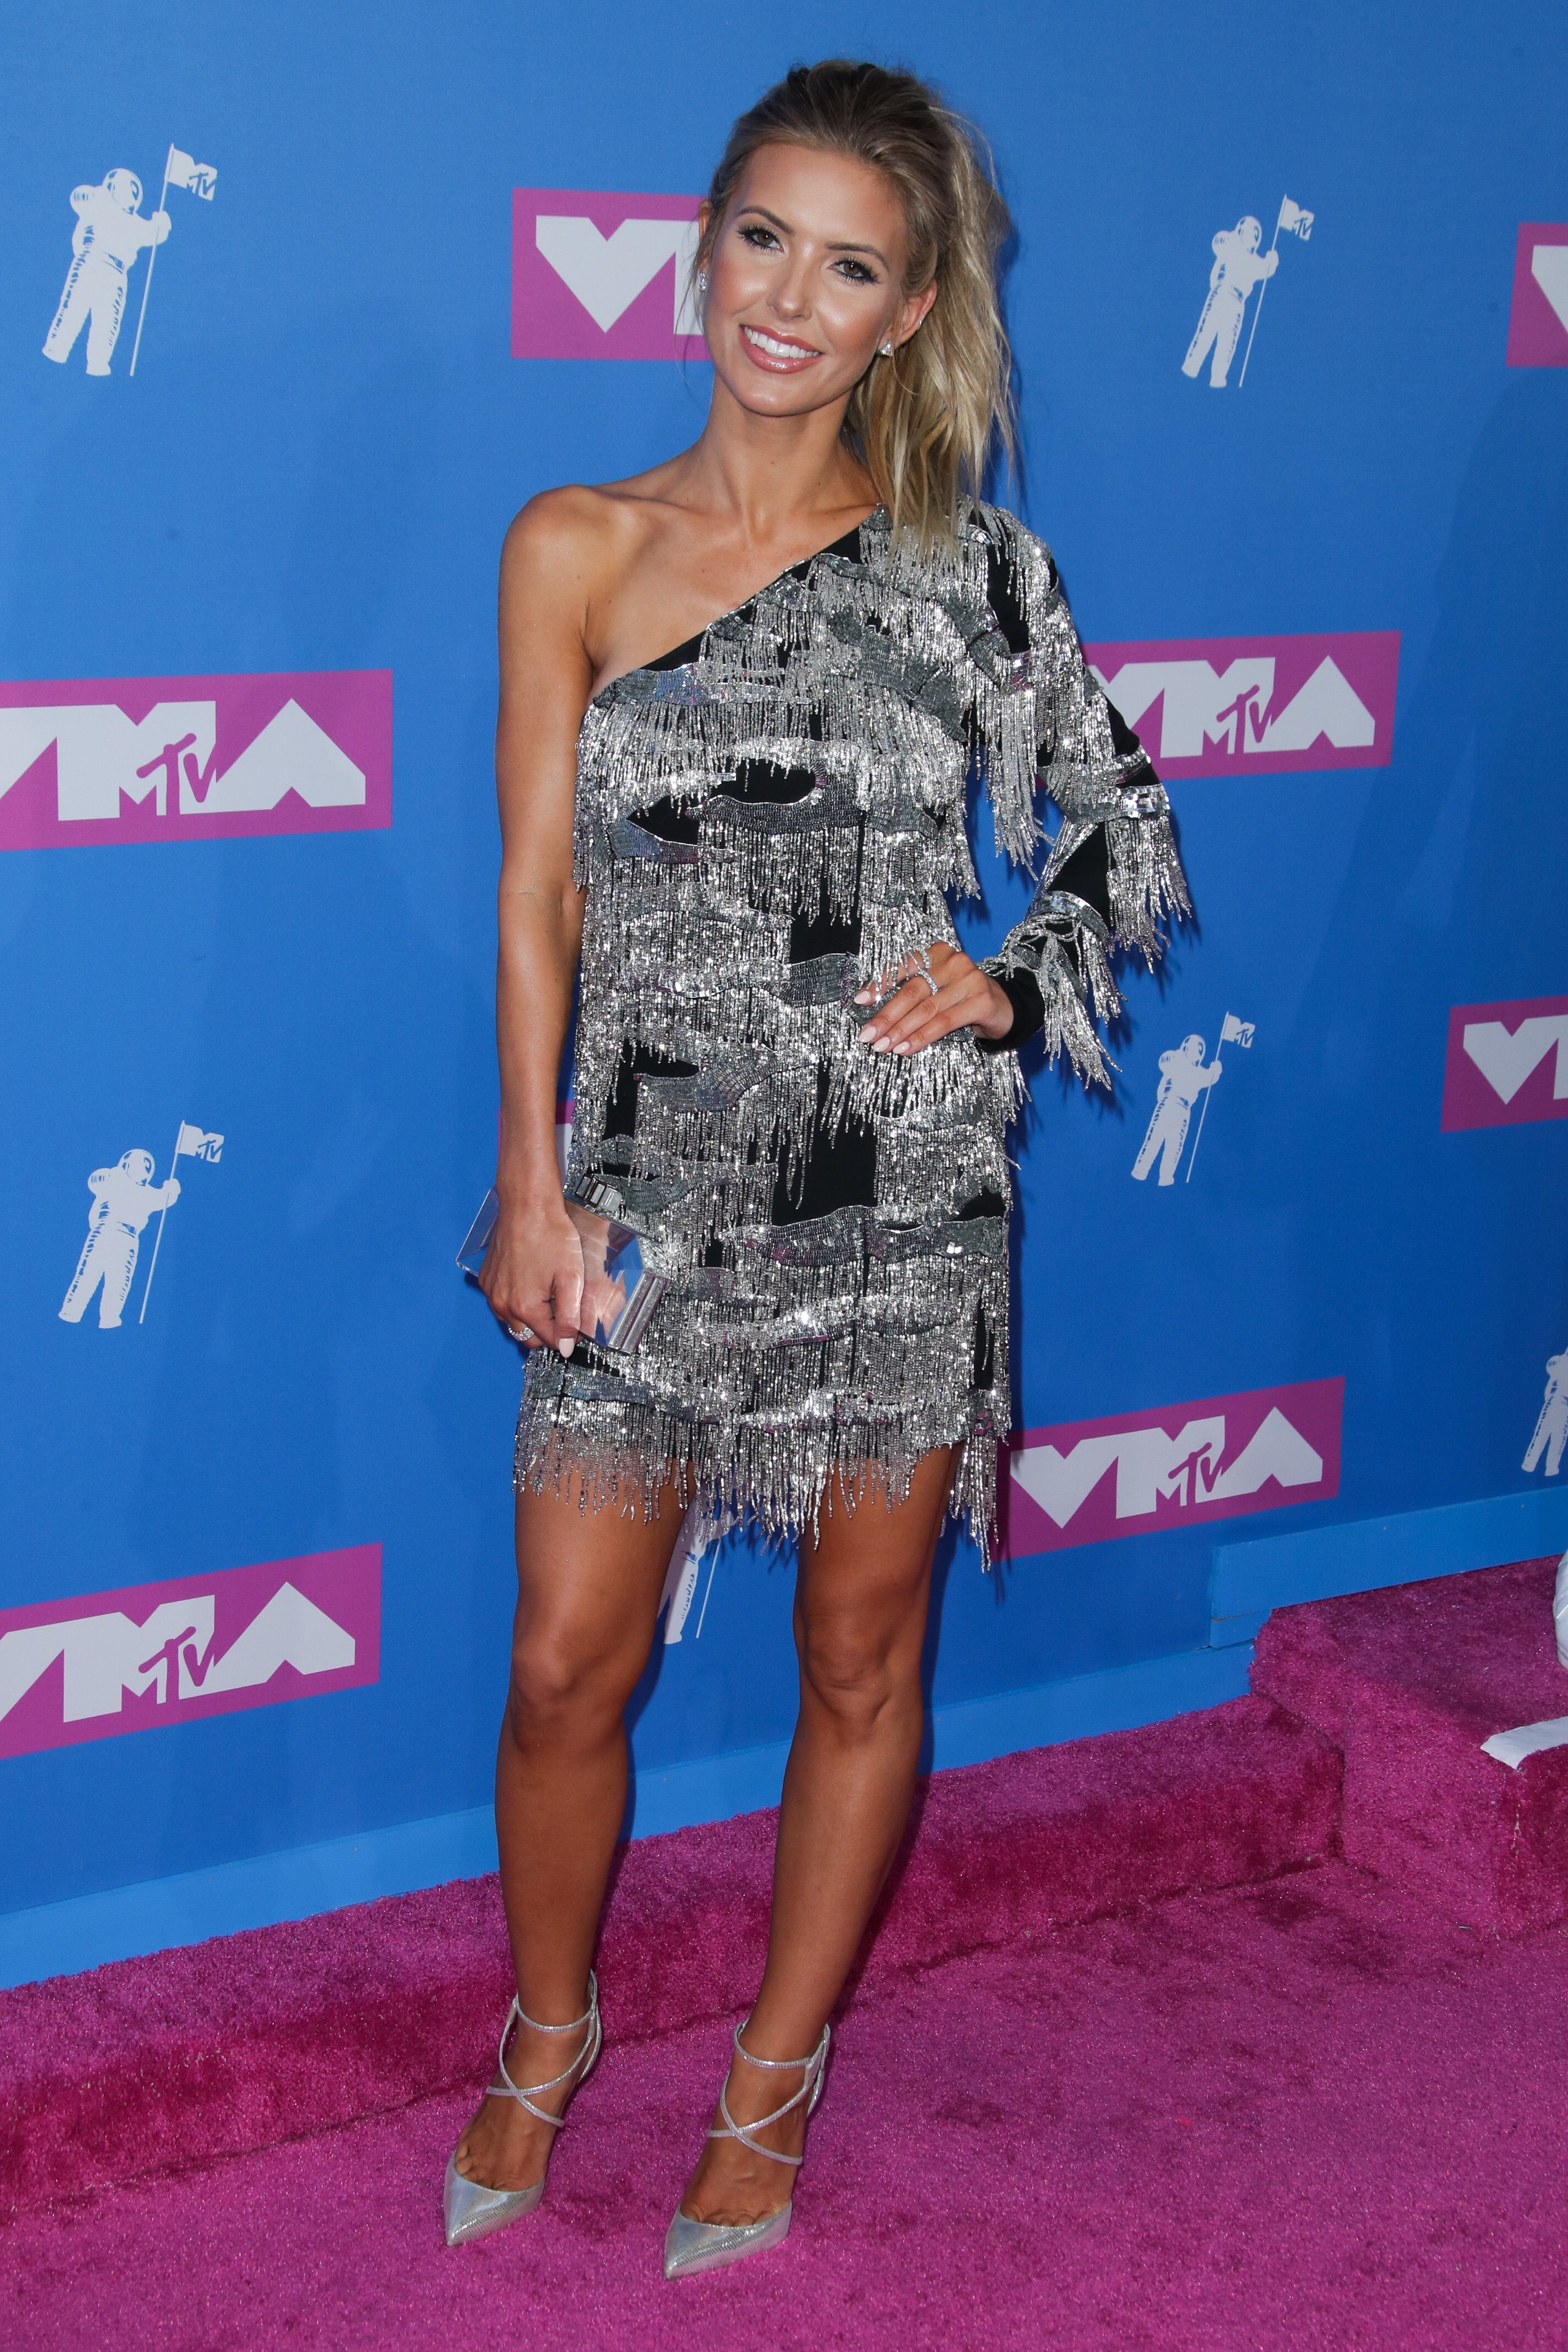 Audrina Patridge attends the MTV Video Music Awards in New York City on Aug. 20, 2018.